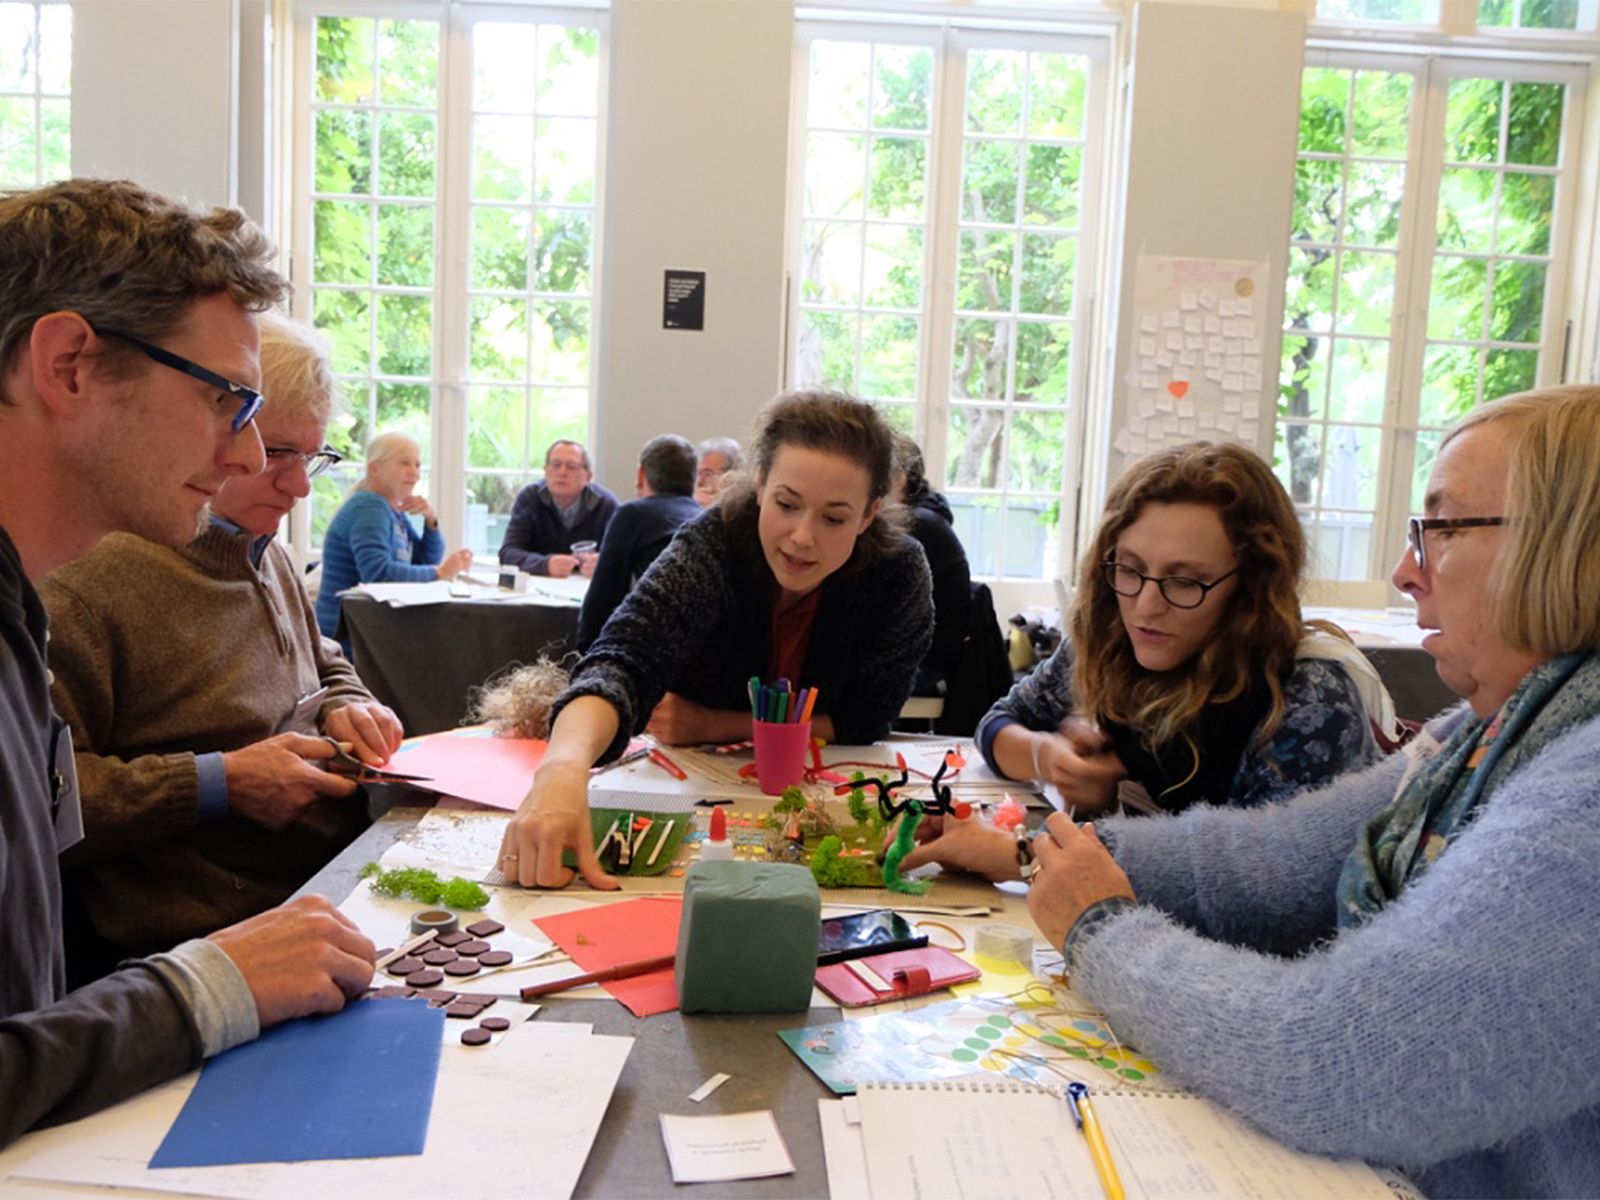 Co-creatie workshop